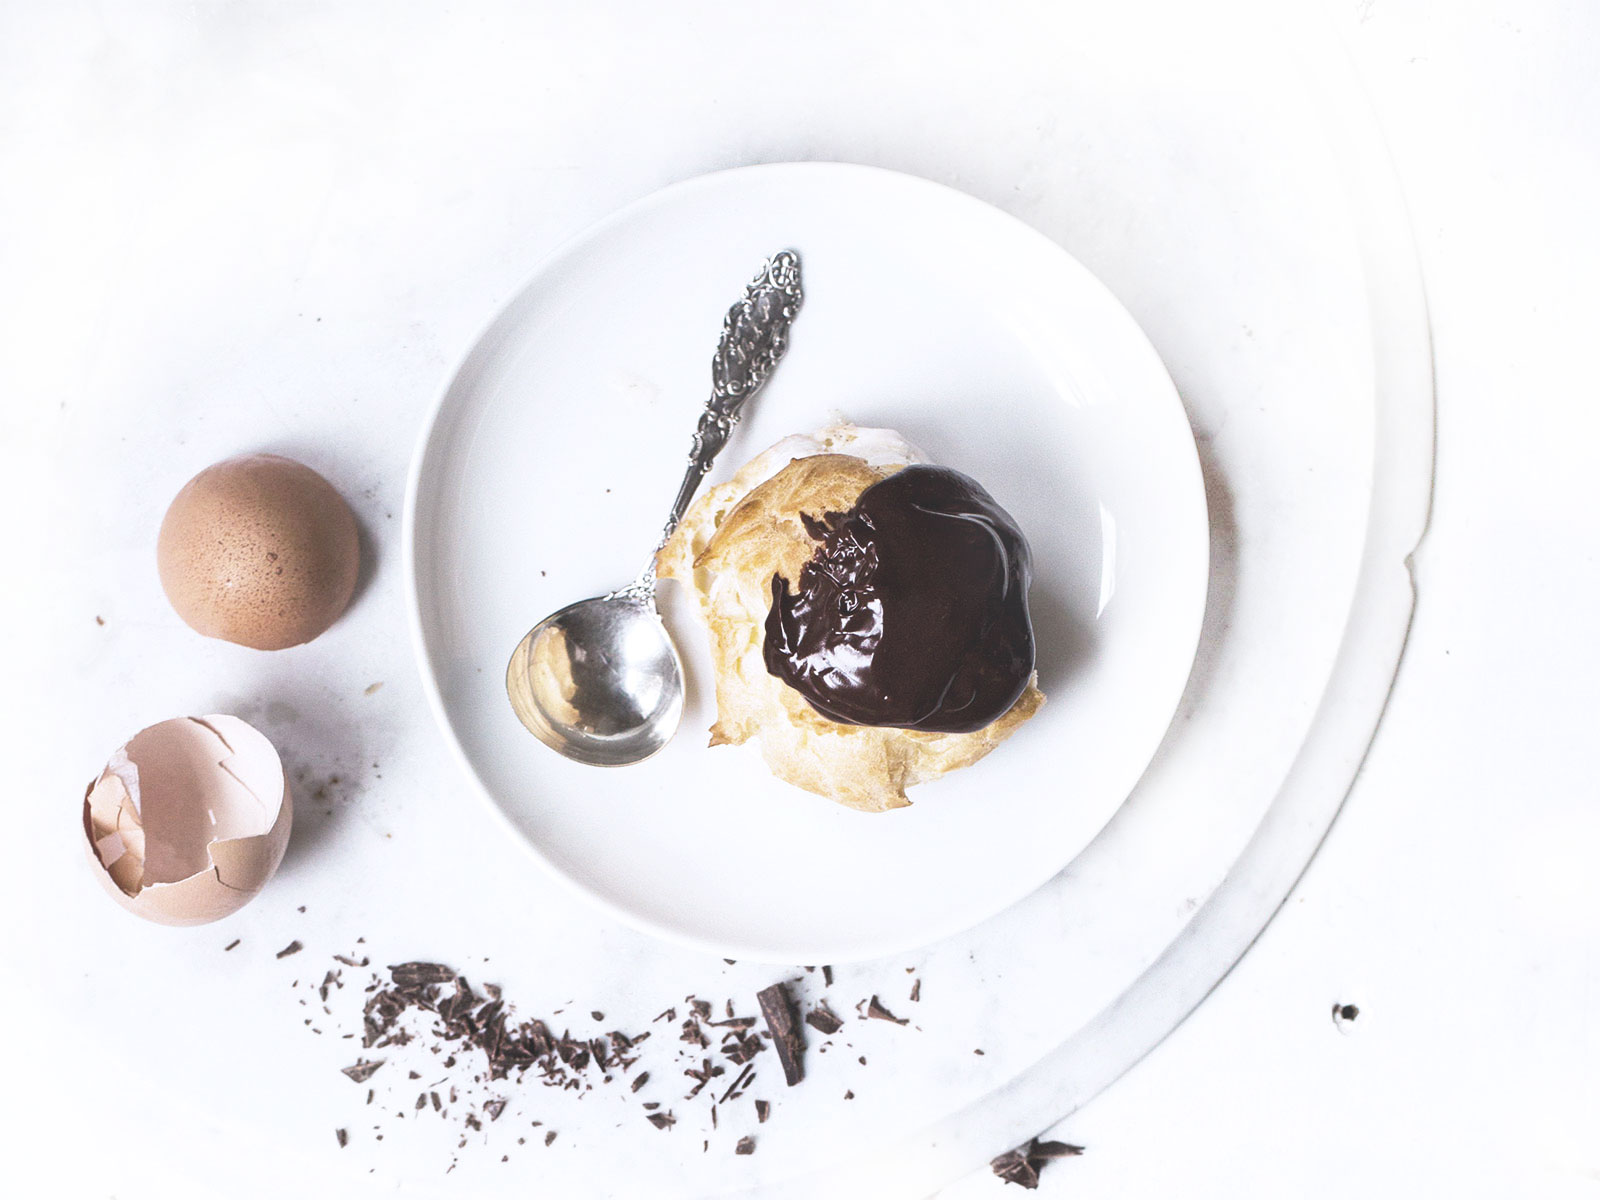 Chocolate profiteroles with vanilla sauce and chocolate slices